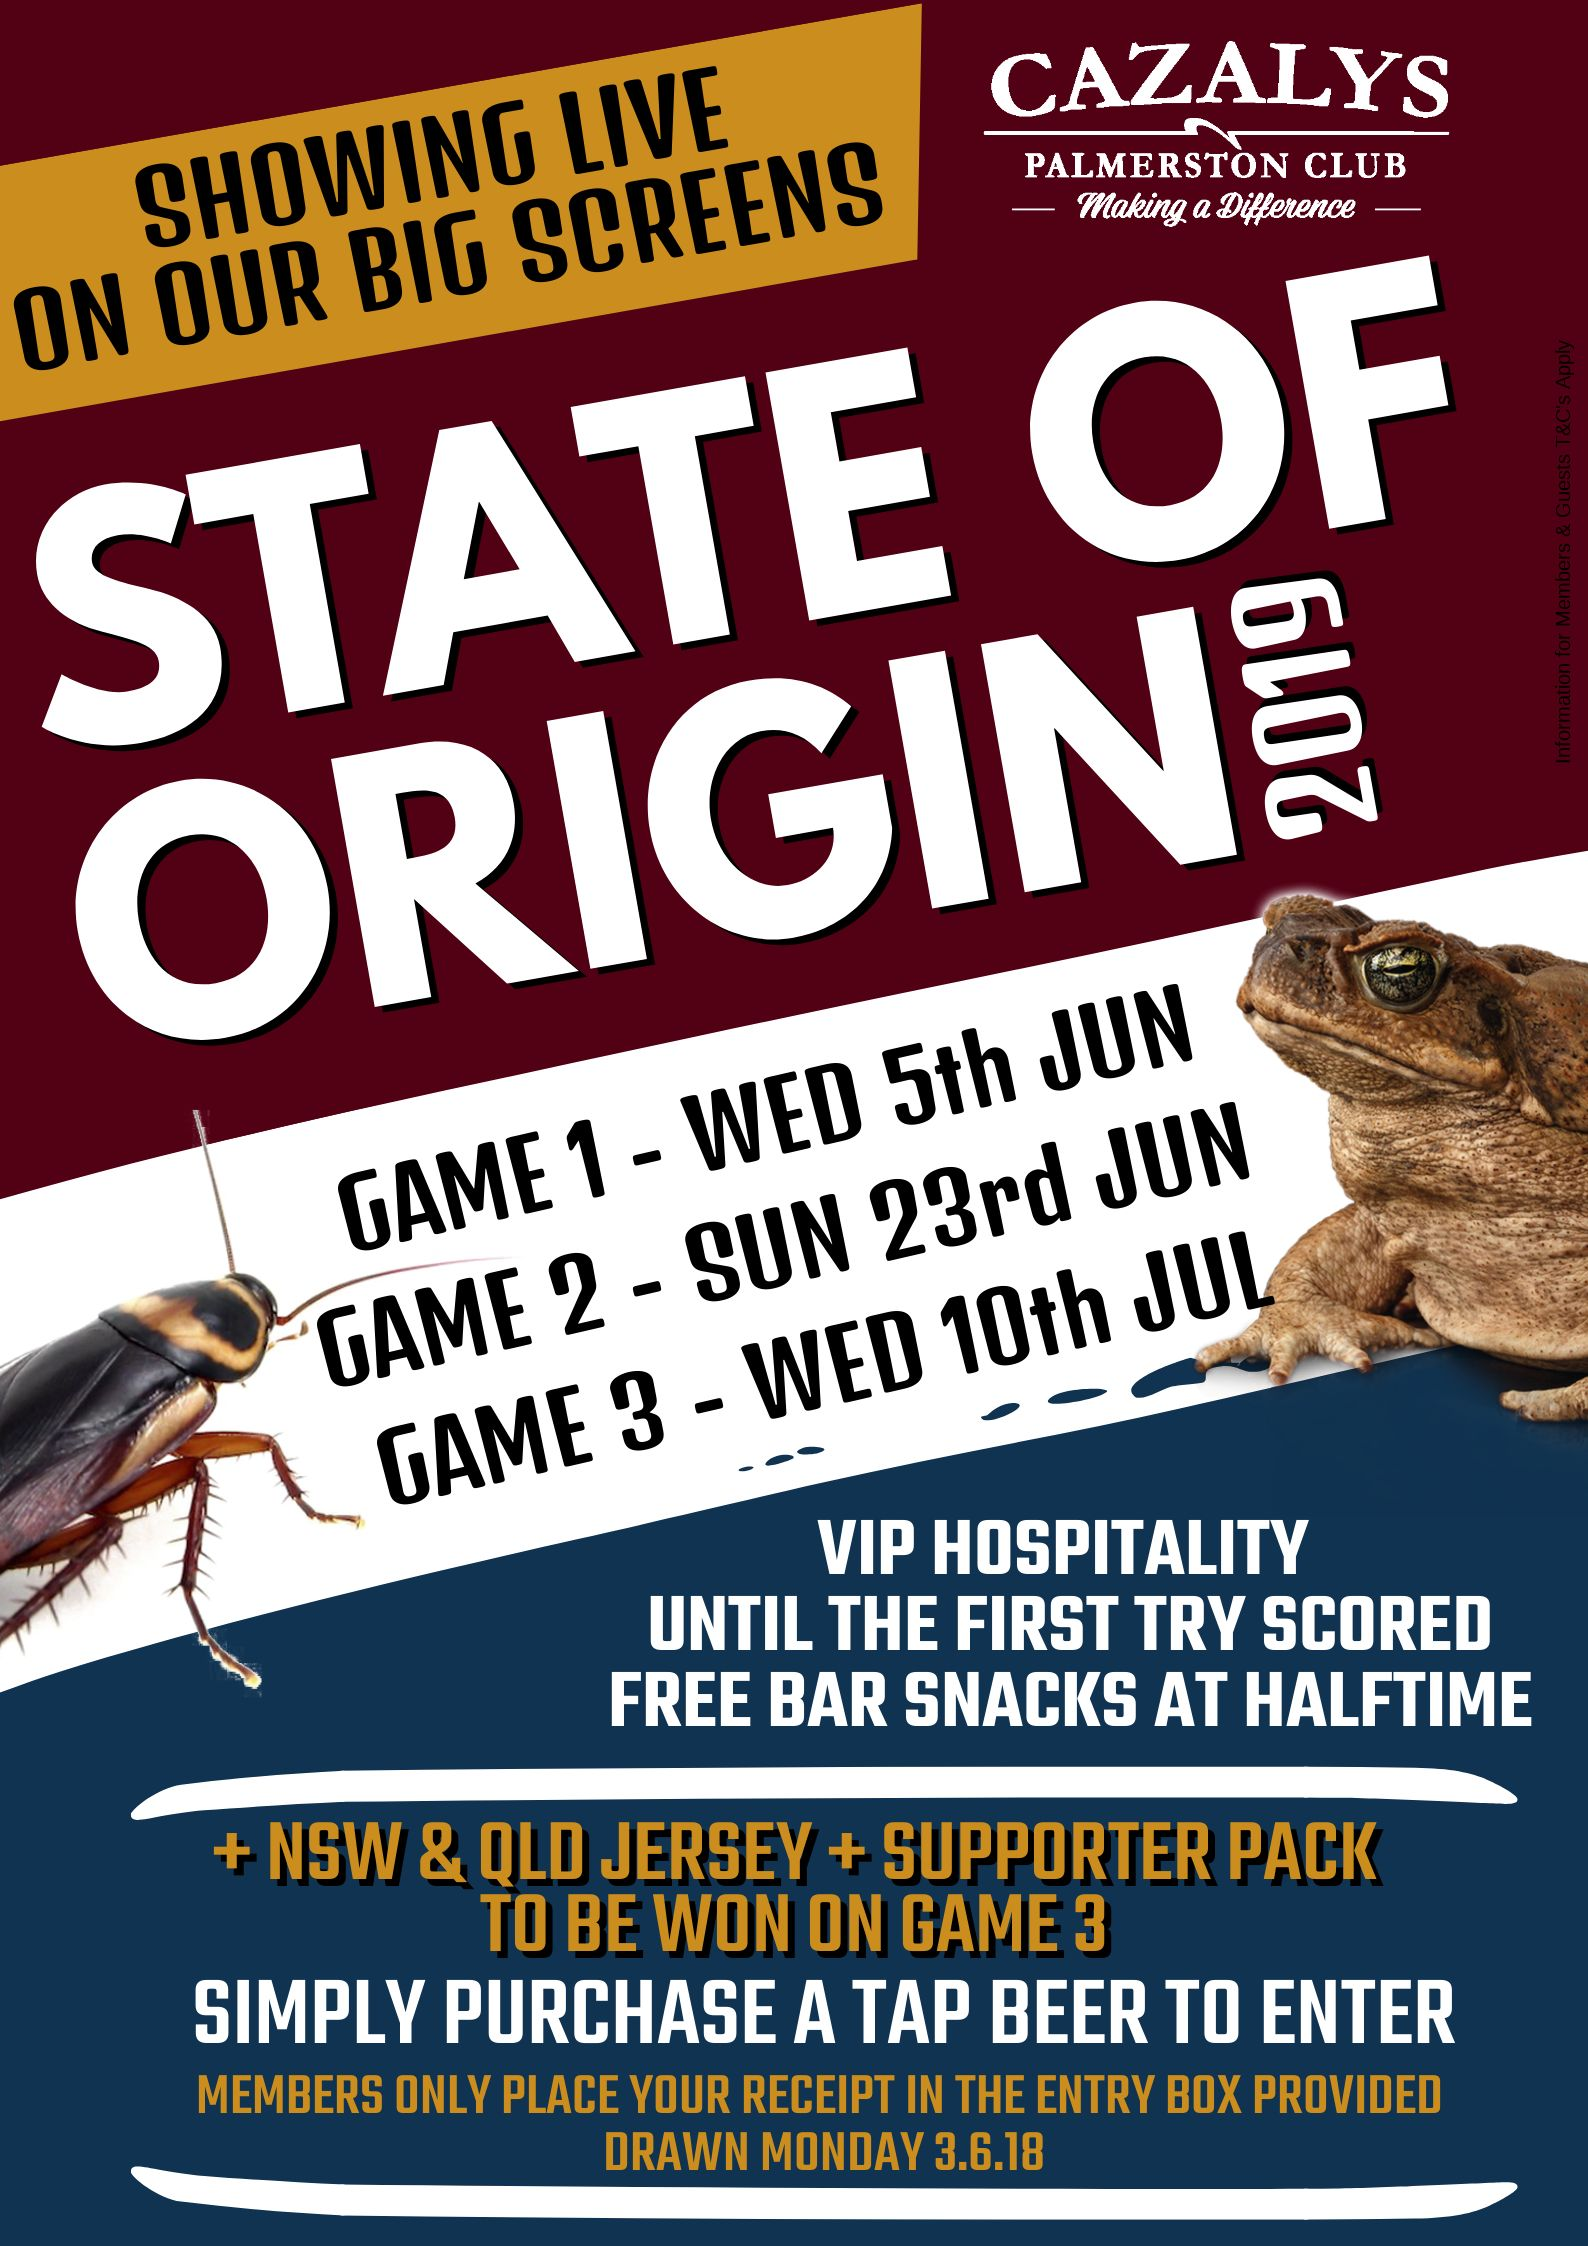 Plan your State of Origin with us at Cazalys! With VIP hospitality until the first try scored, complimentary bar snacks at half time, drink specials and multiple screens to watch, you cant go wrong!  We will see you here, Wed 5th June